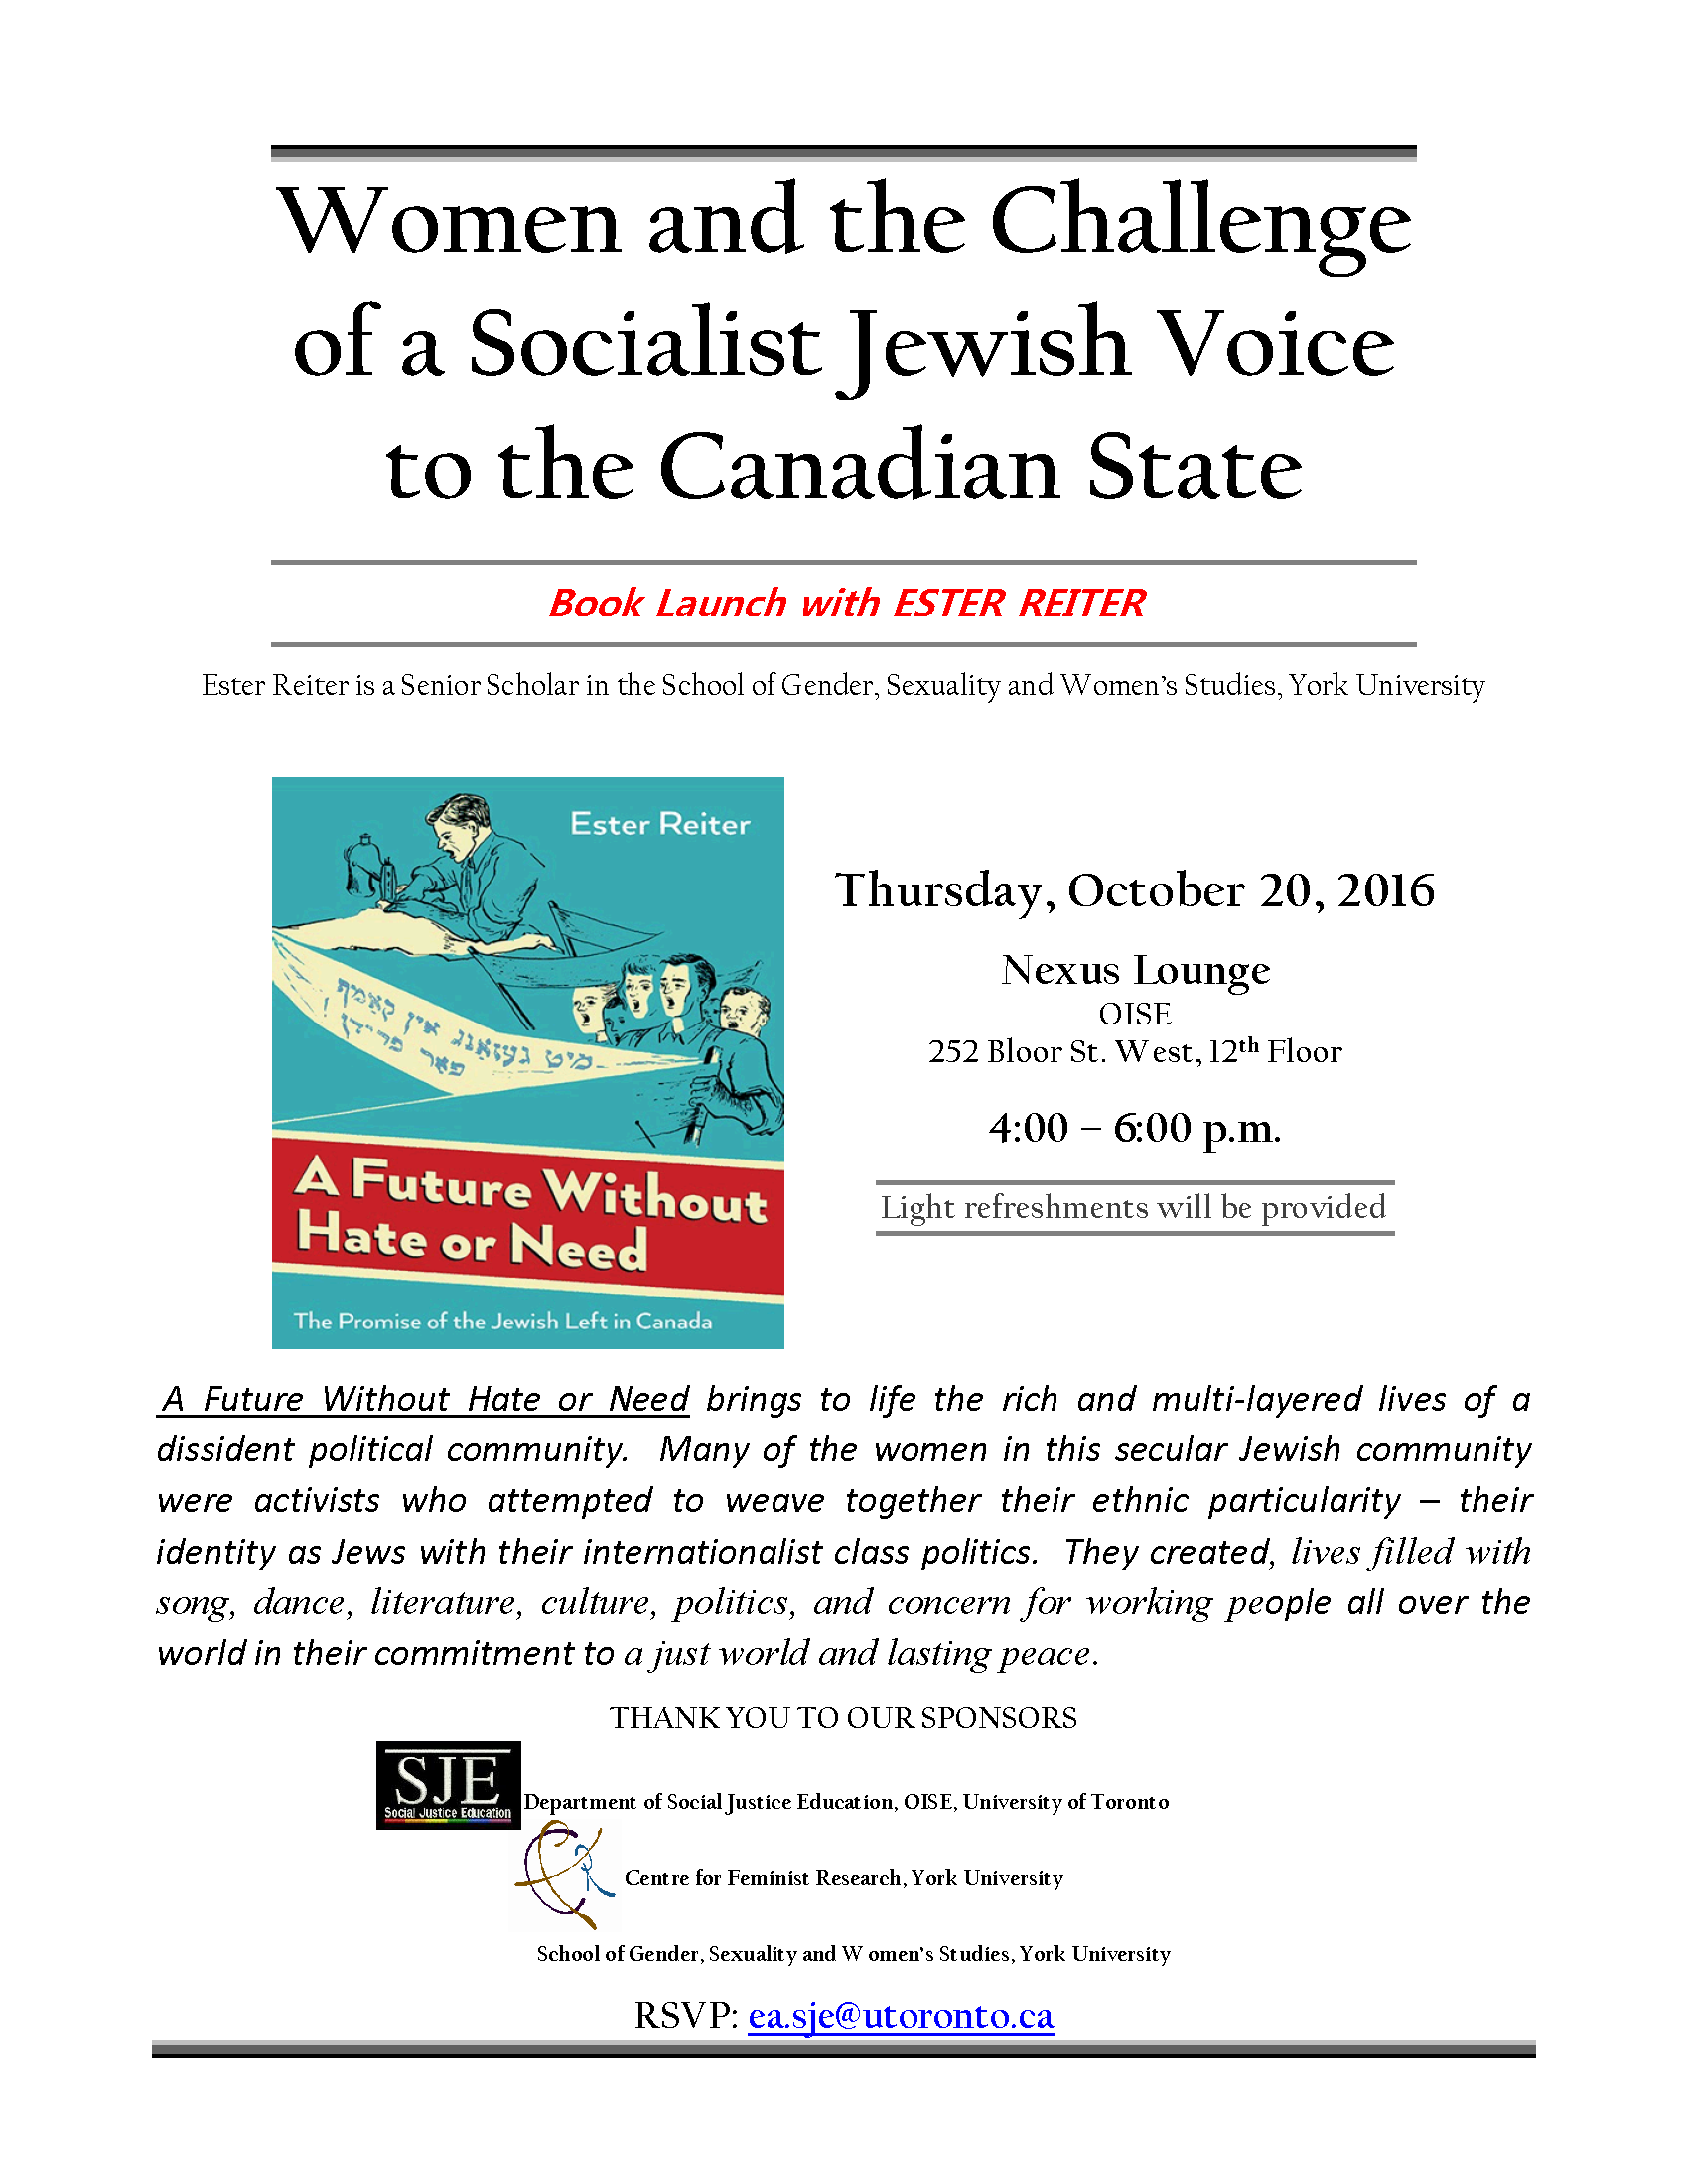 """CFR Co-Sponsored: Ester Reiter's """"A Future Without Hate or Need"""" Book launch @ 12th floor, Nexus Lounge OISE 